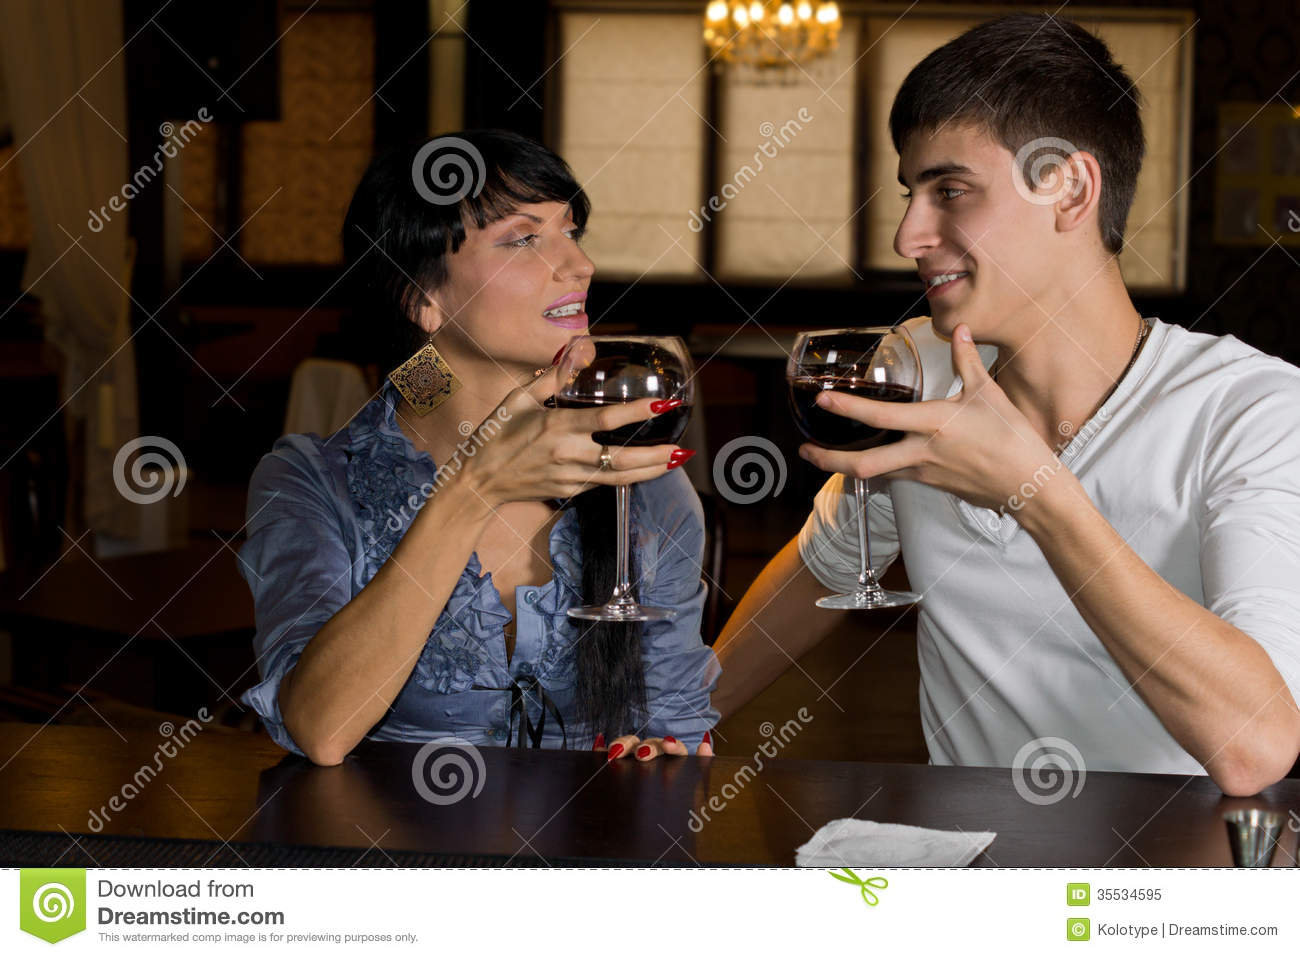 Young couple drinking red wine at a bar counter